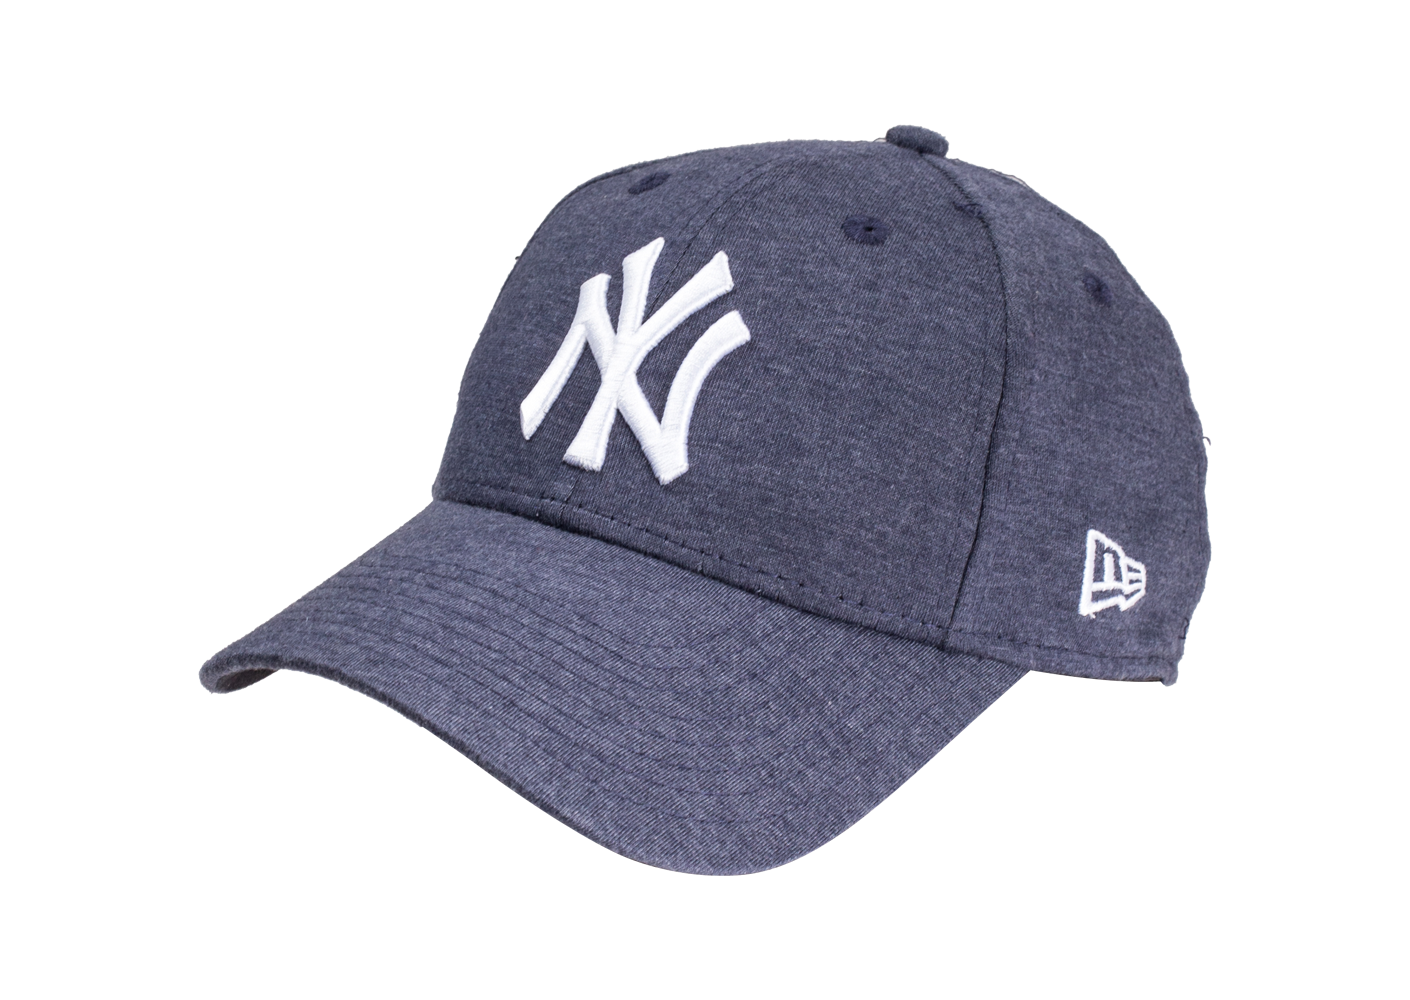 New Era Enfant Casquette Winter New York Yankees Bleu Marine Enfant